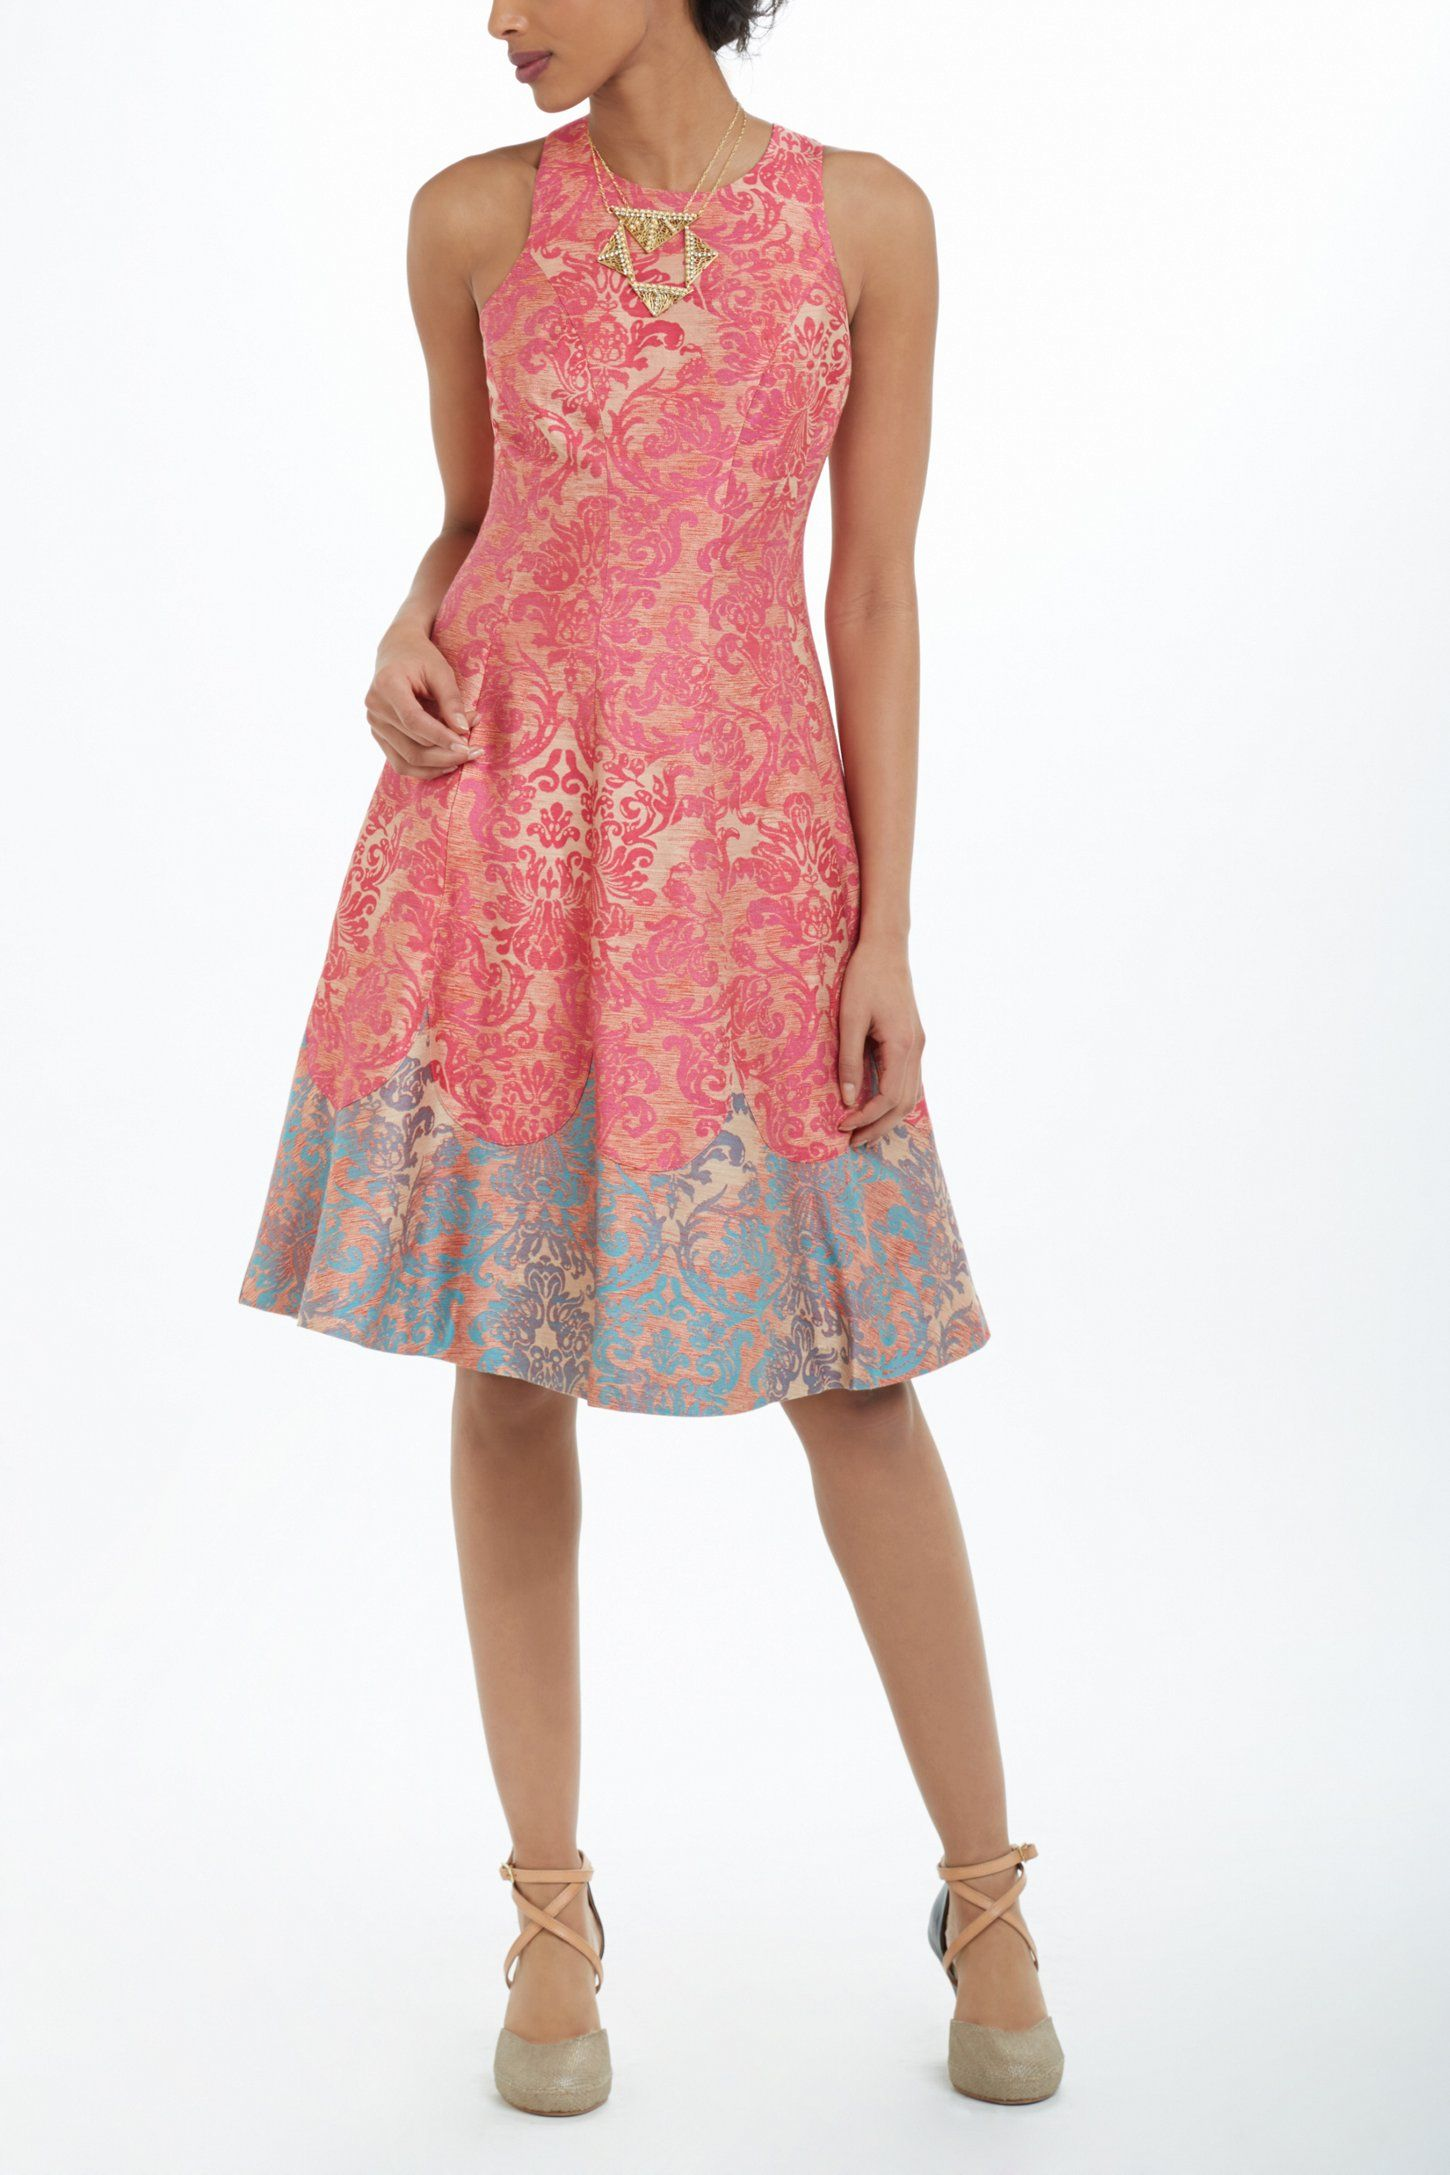 Colwyn Brocade Dress from Anthropologie | Fashion: Dresses ...